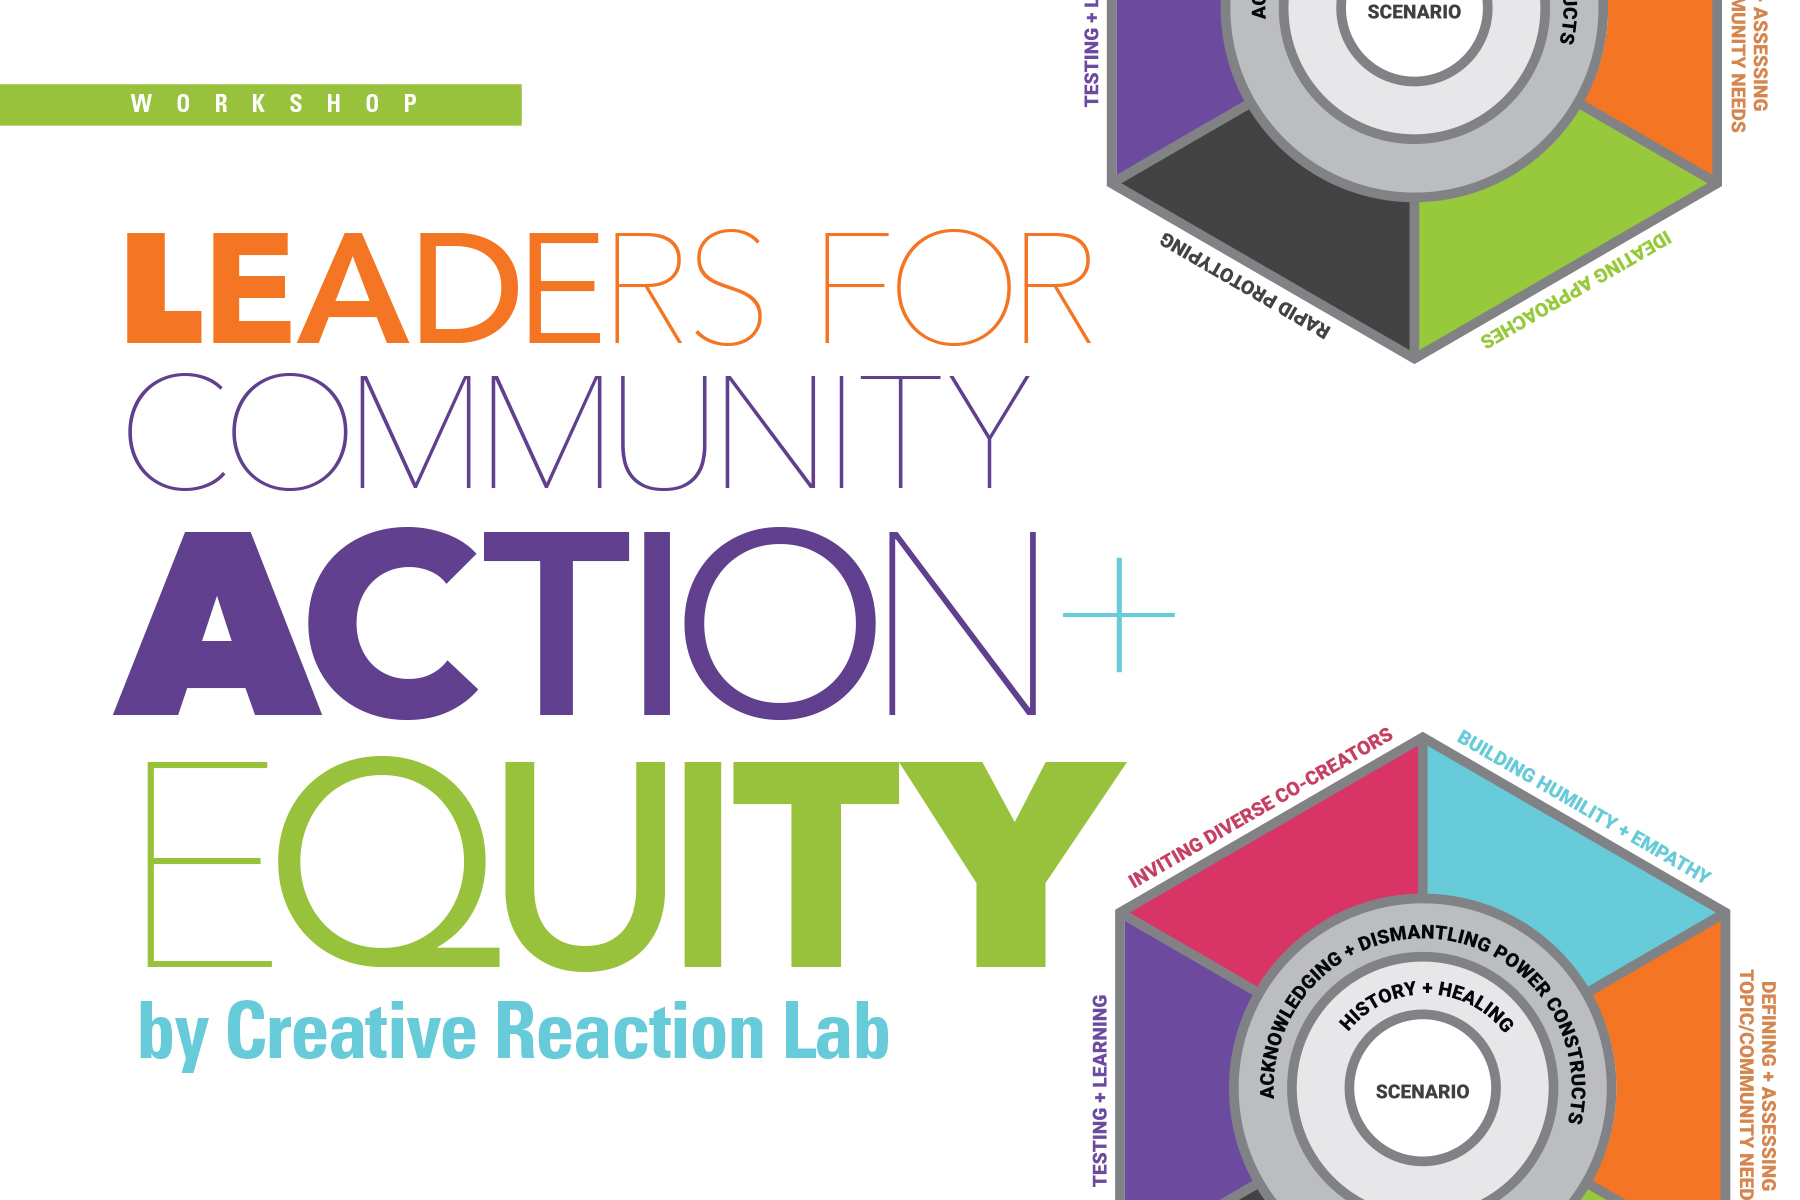 Creative Reaction Lab Workshop: Leaders for Community Action + Equity